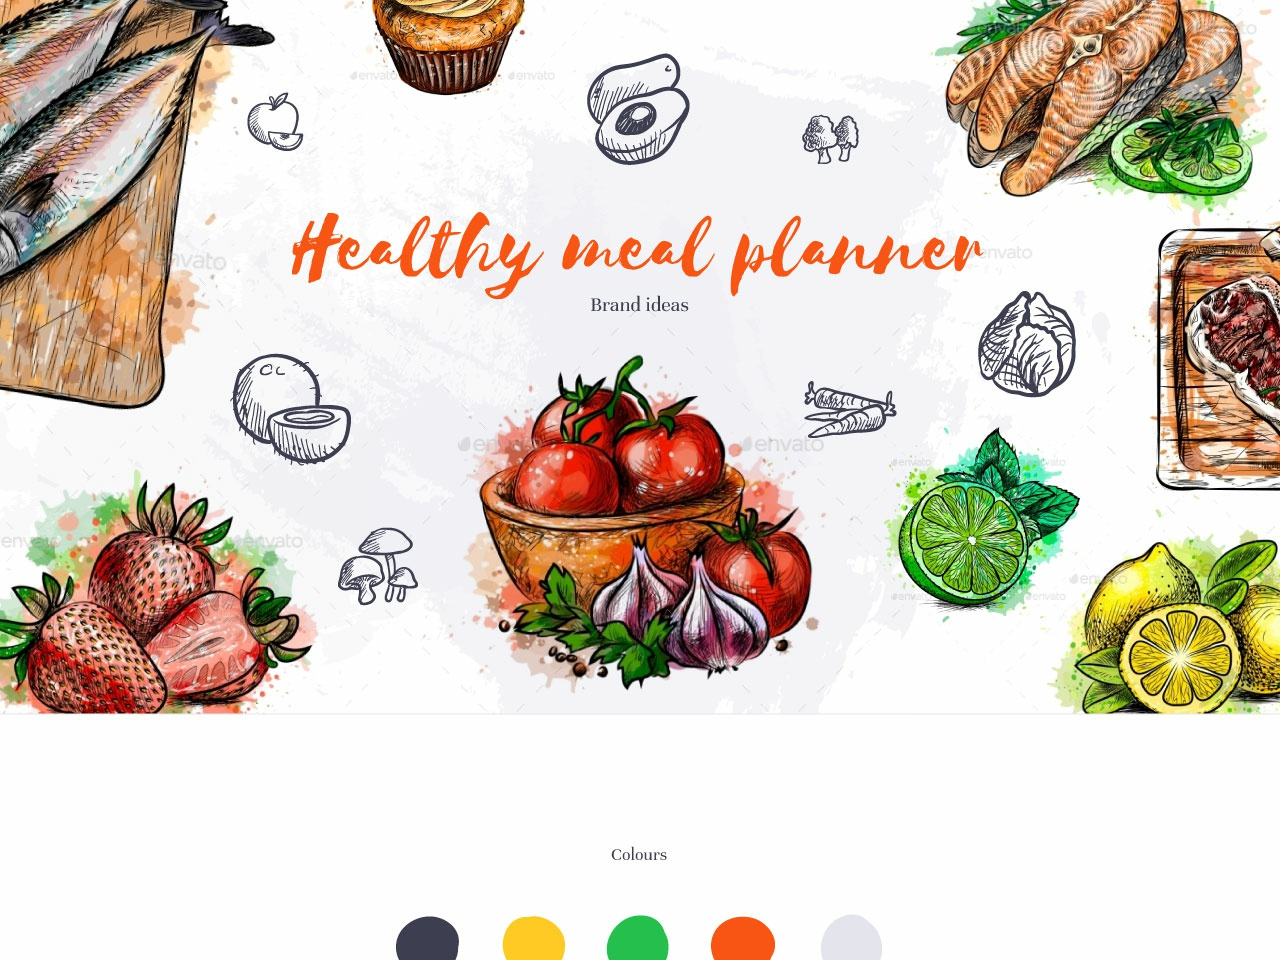 Meal planner brand